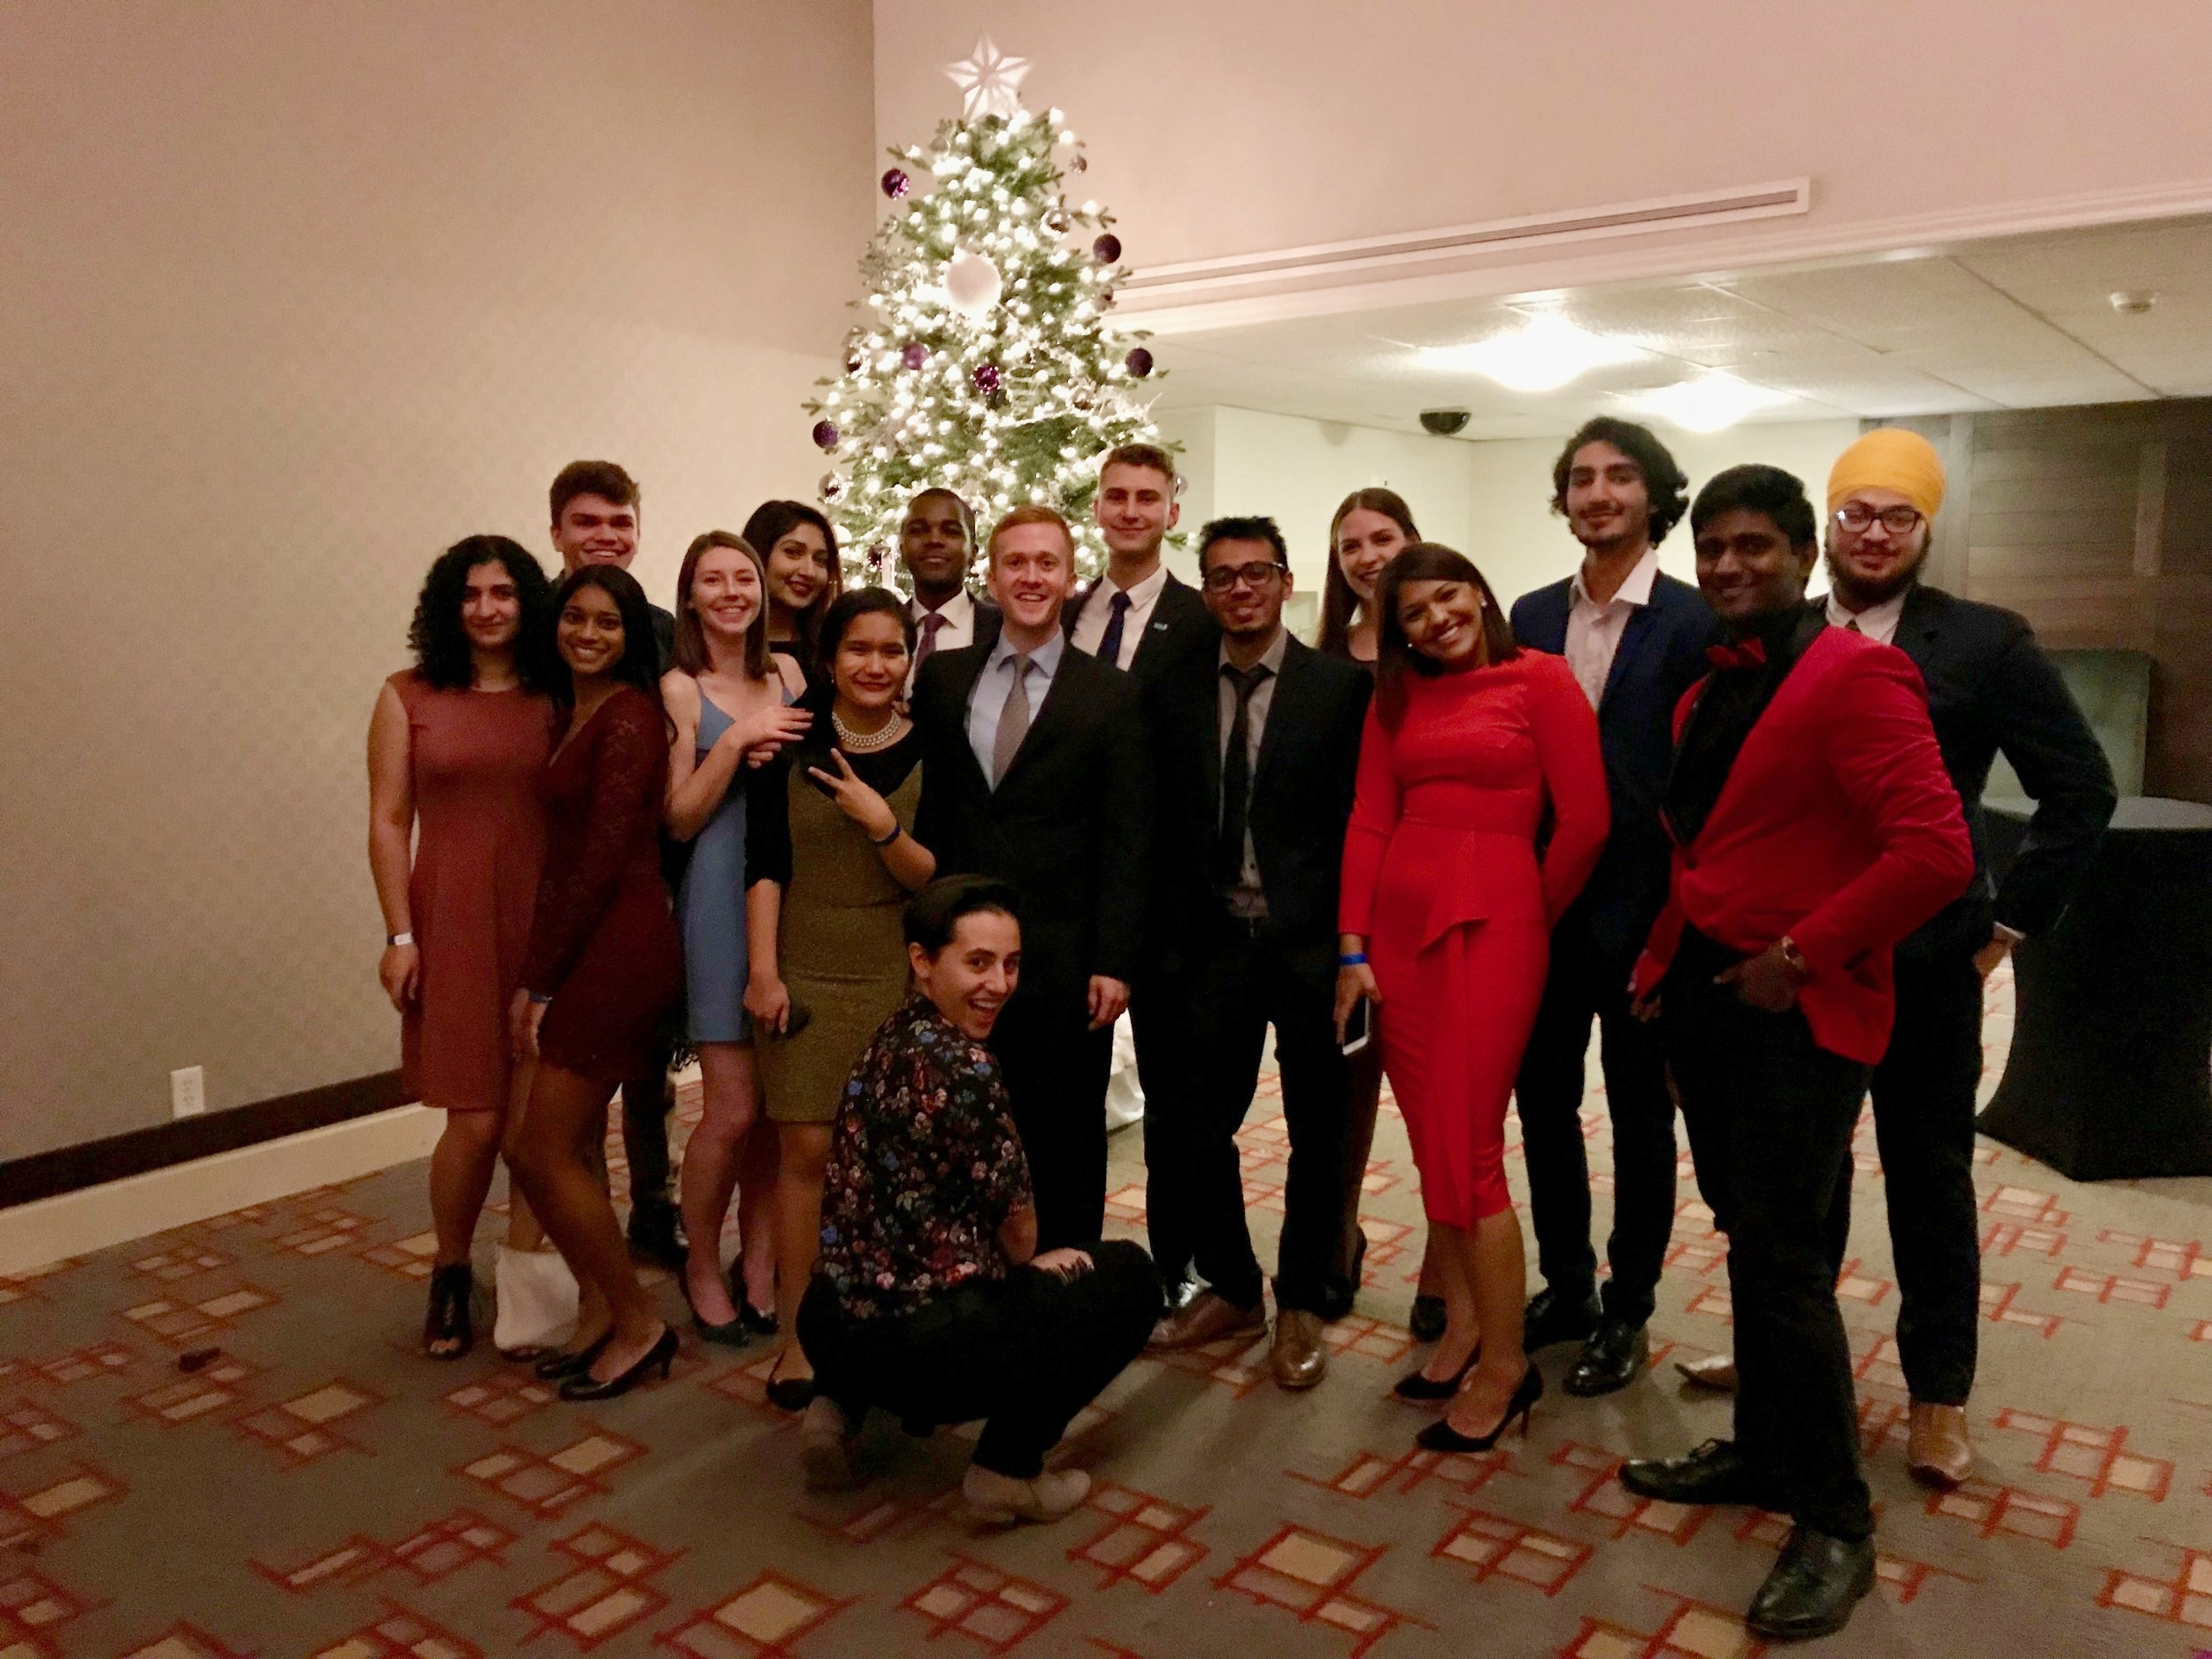 Ryerson's delegation to Queen's Model UN, conference 2017